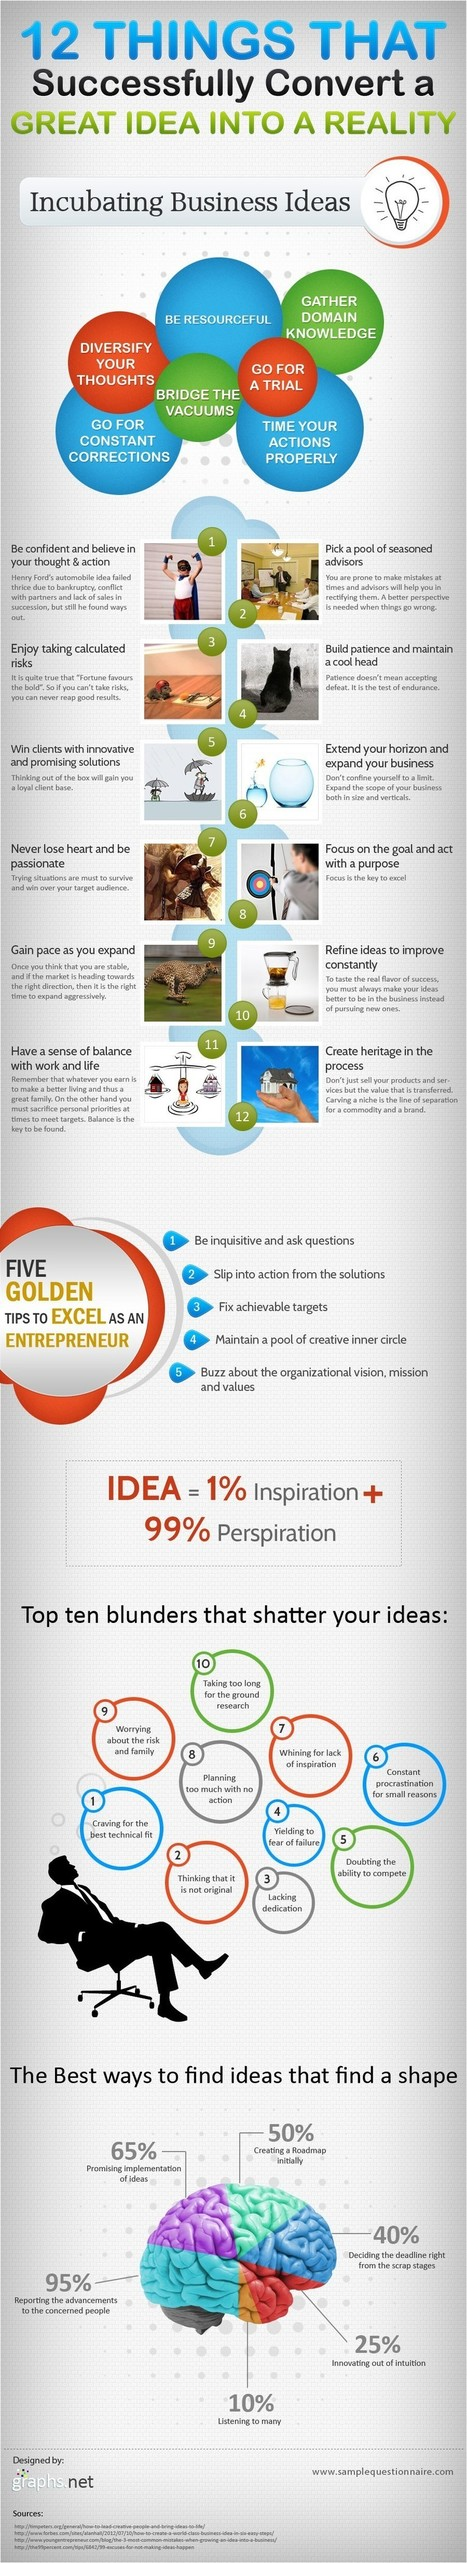 12 Successful Things to Convert Idea into Reality | All Infographics | Viral Classified News | Scoop.it